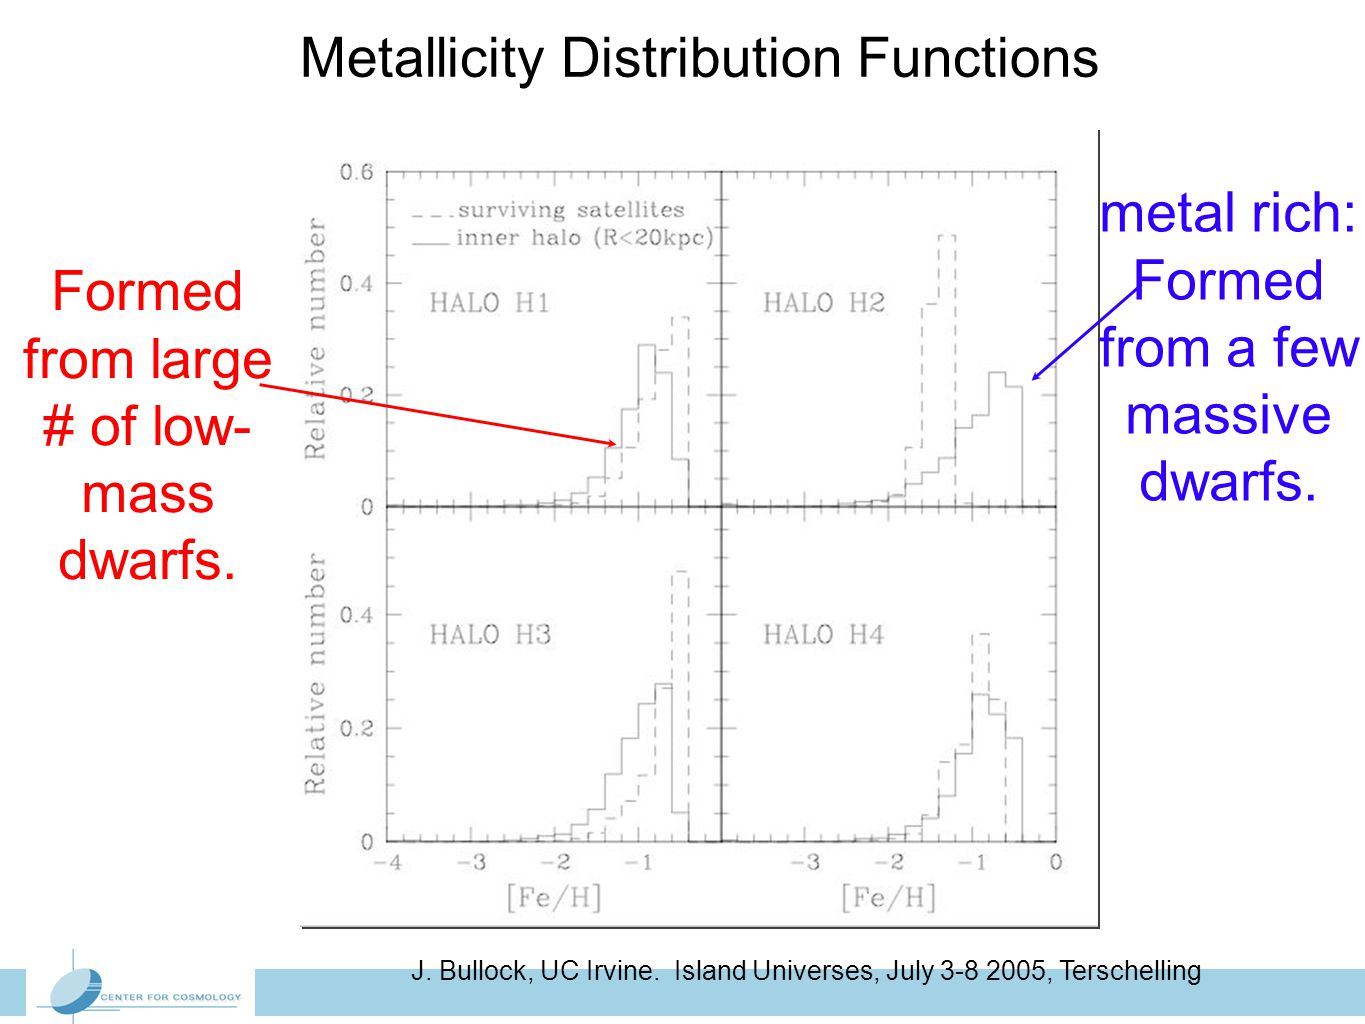 J. Bullock, UC Irvine. Island Universes, July 3-8 2005, Terschelling Metallicity Distribution Functions metal rich: Formed from a few massive dwarfs.